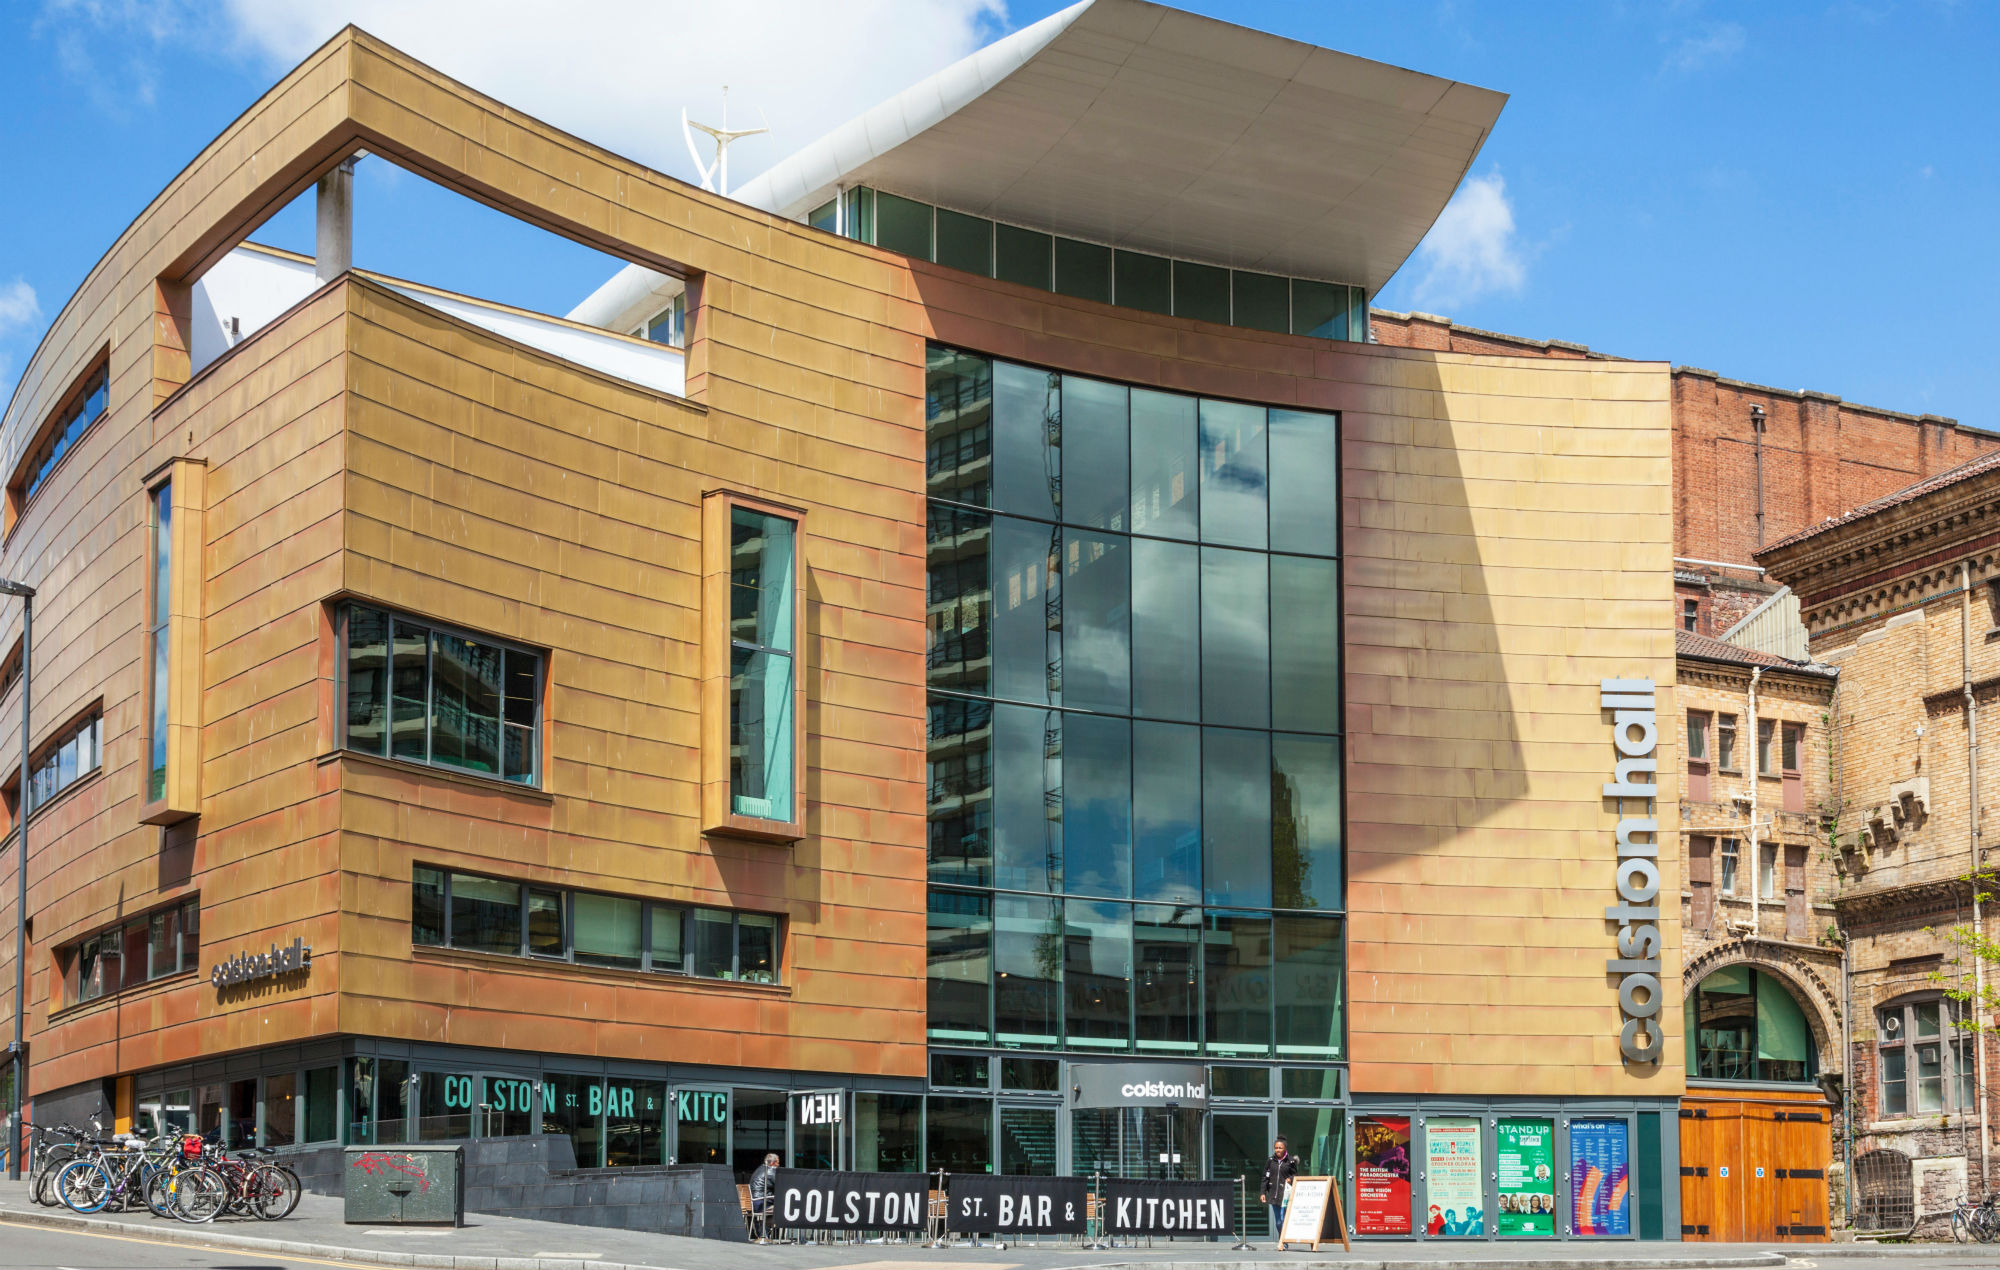 Bristol's Colston Hall unveils new name in wake of Black Lives Matter protests